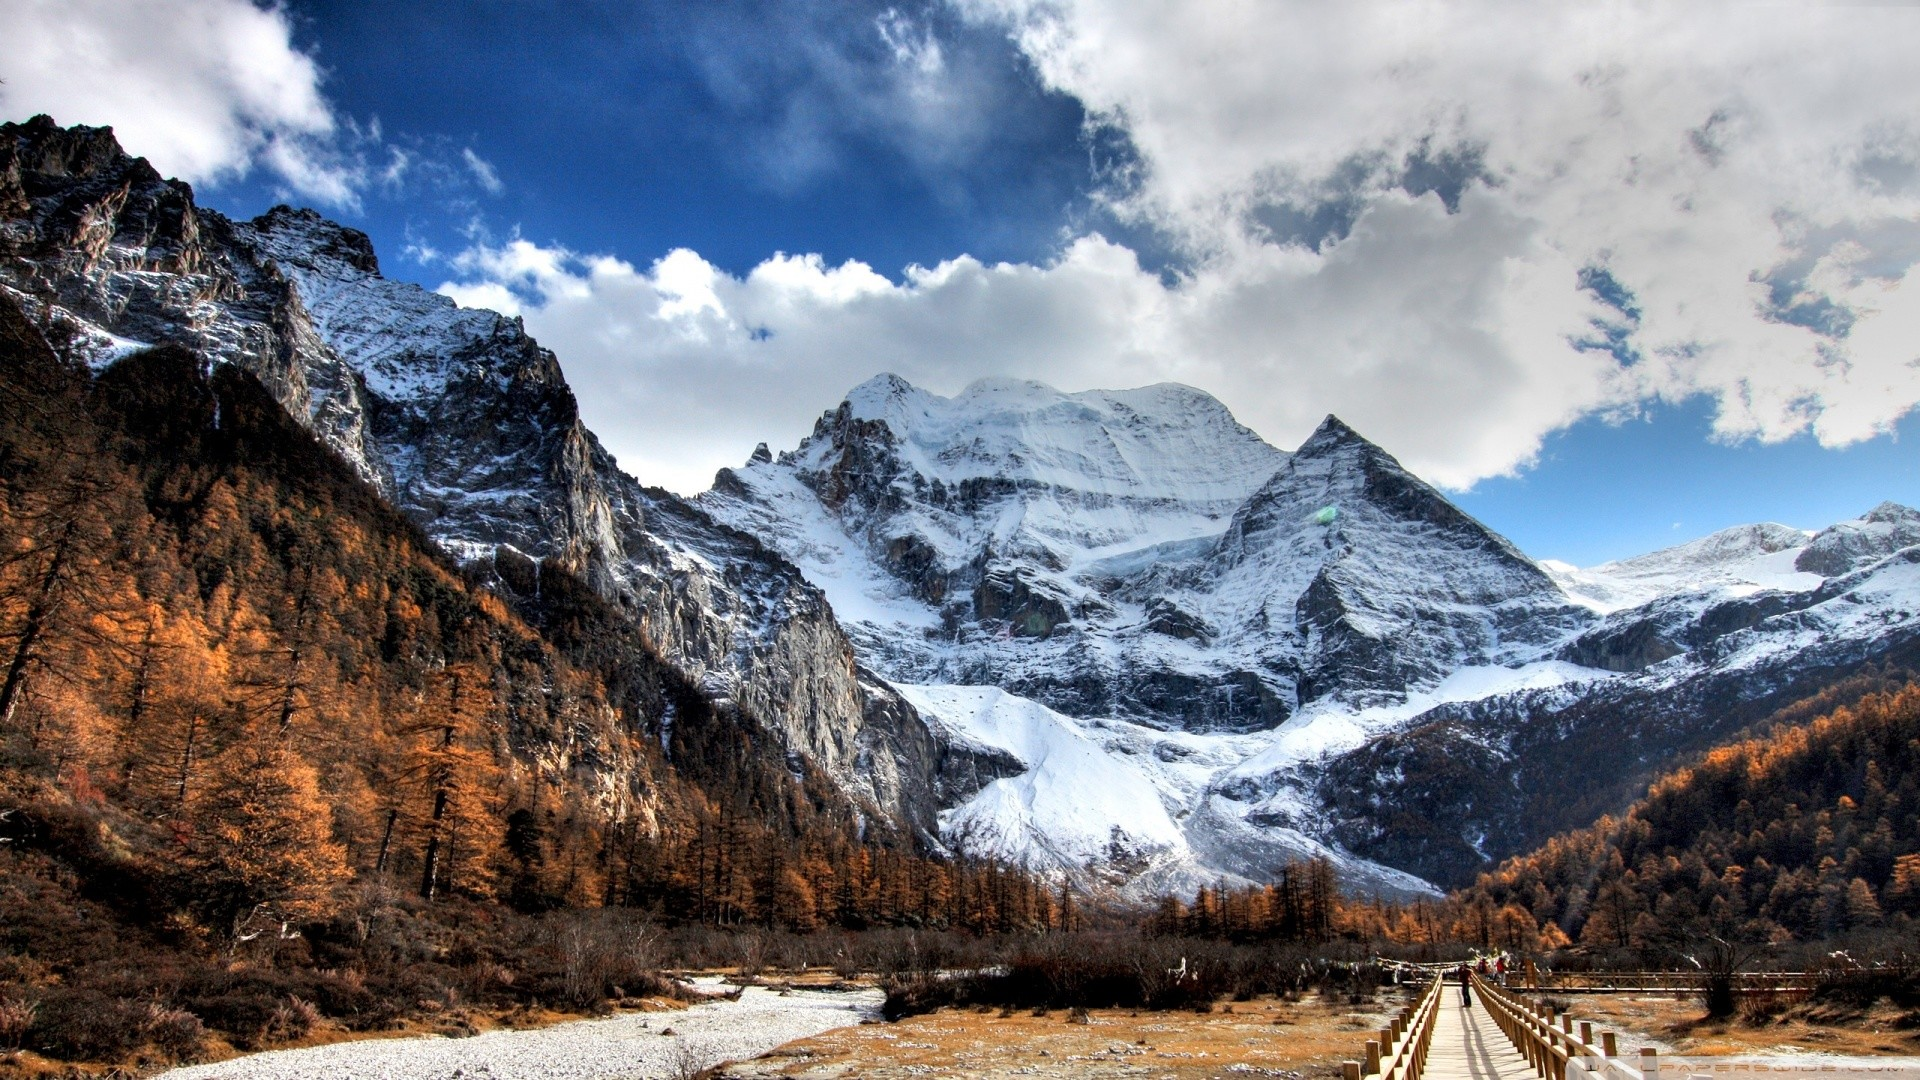 Hd Wallpapers High Definition: High Definition Mountain Wallpaper (57+ Images